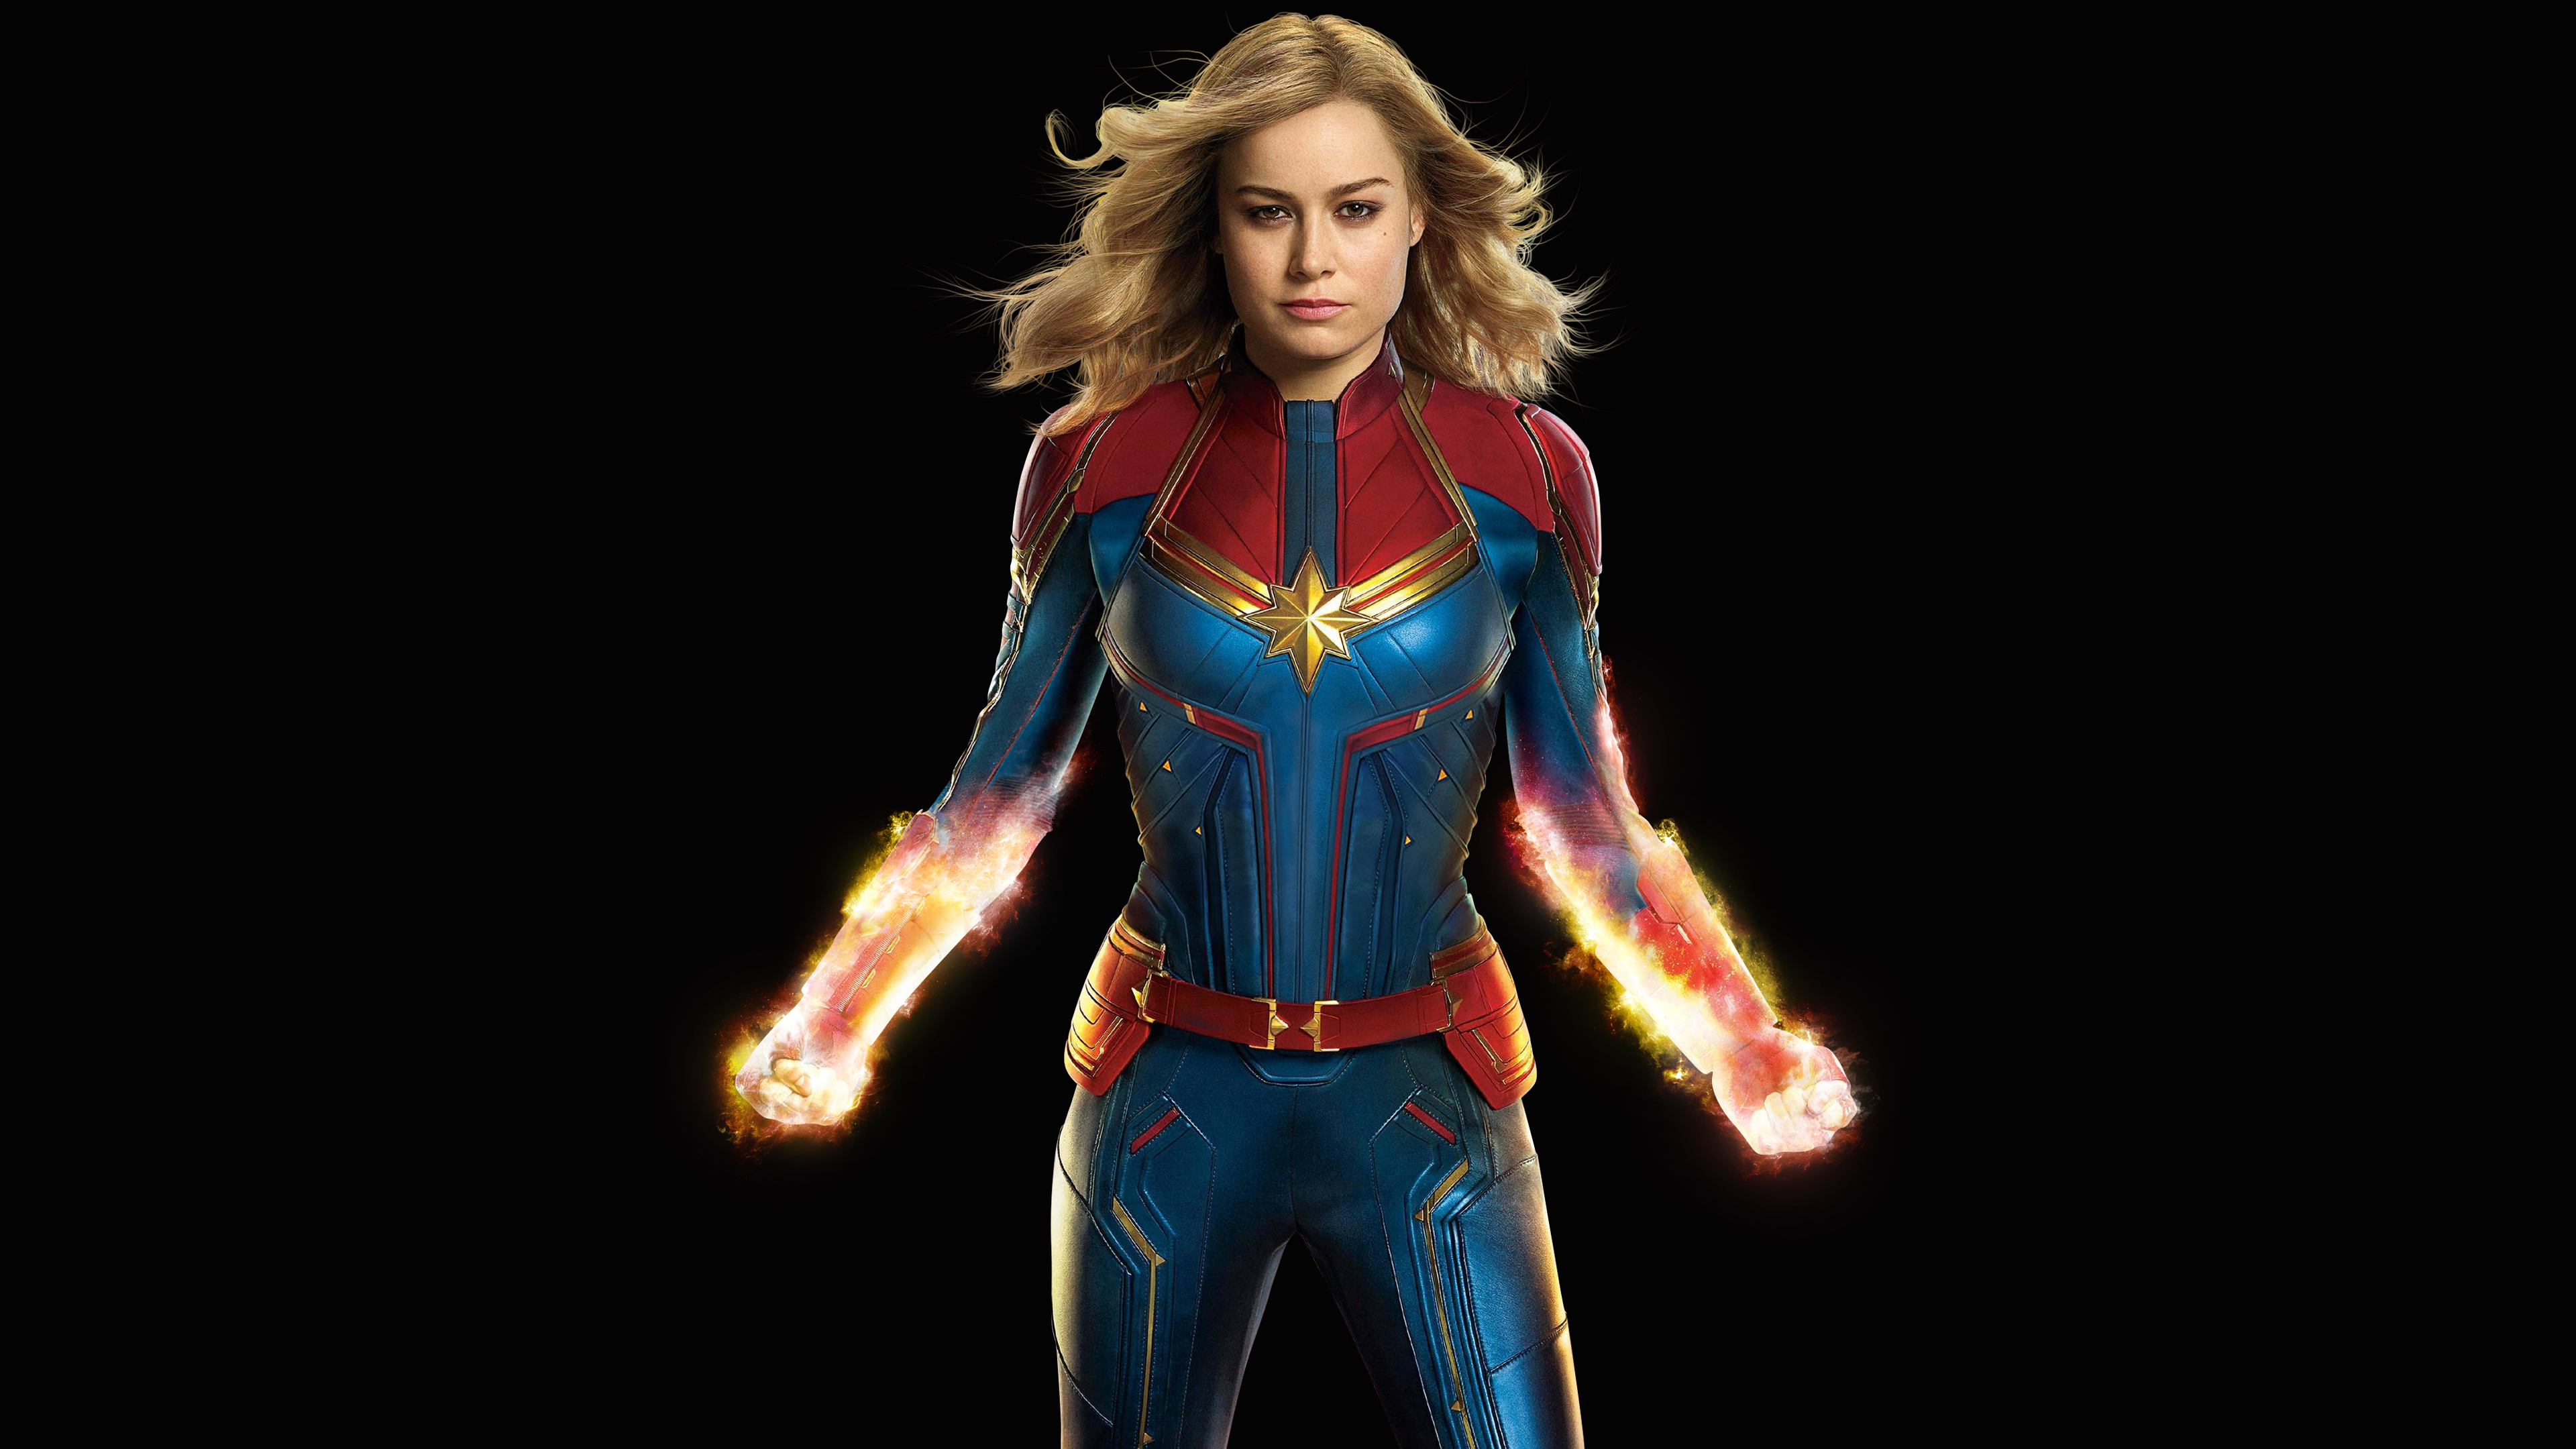 Captain Marvelbrie Larson 4k Ultra Hd Wallpaper Hintergrund